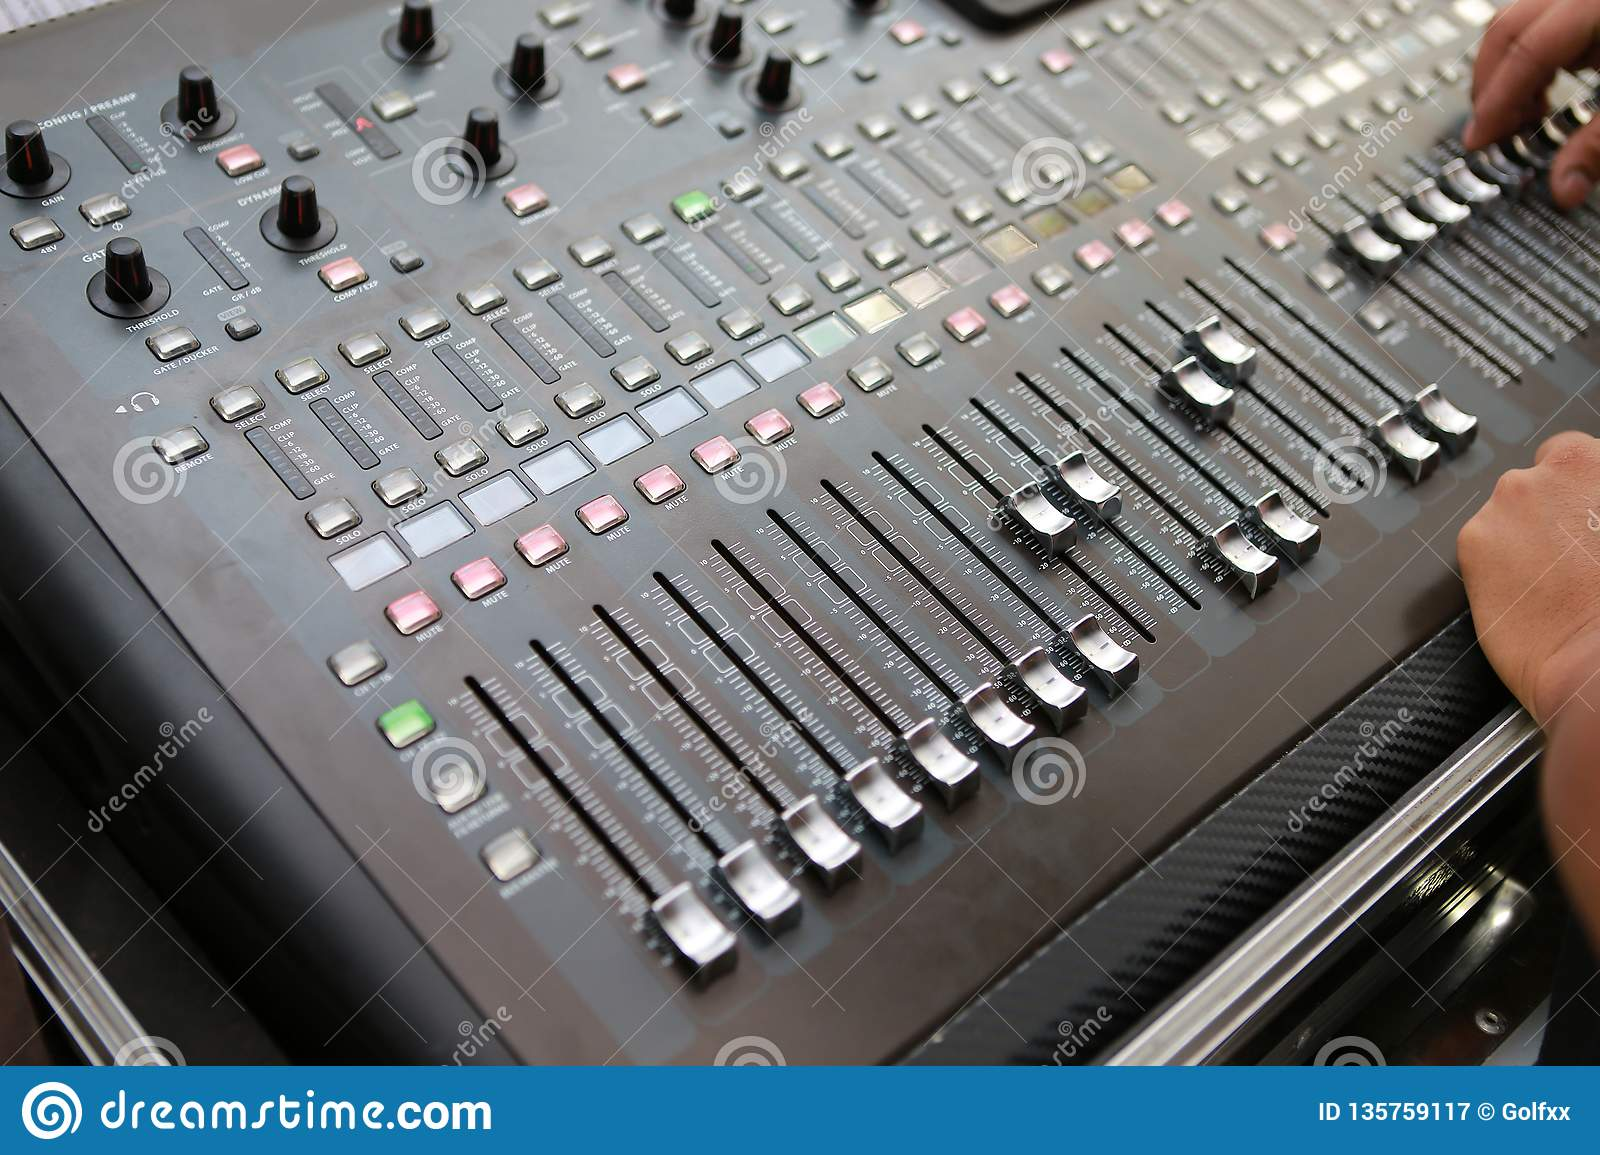 Sound levels on a professional audio mixer, Music control panel